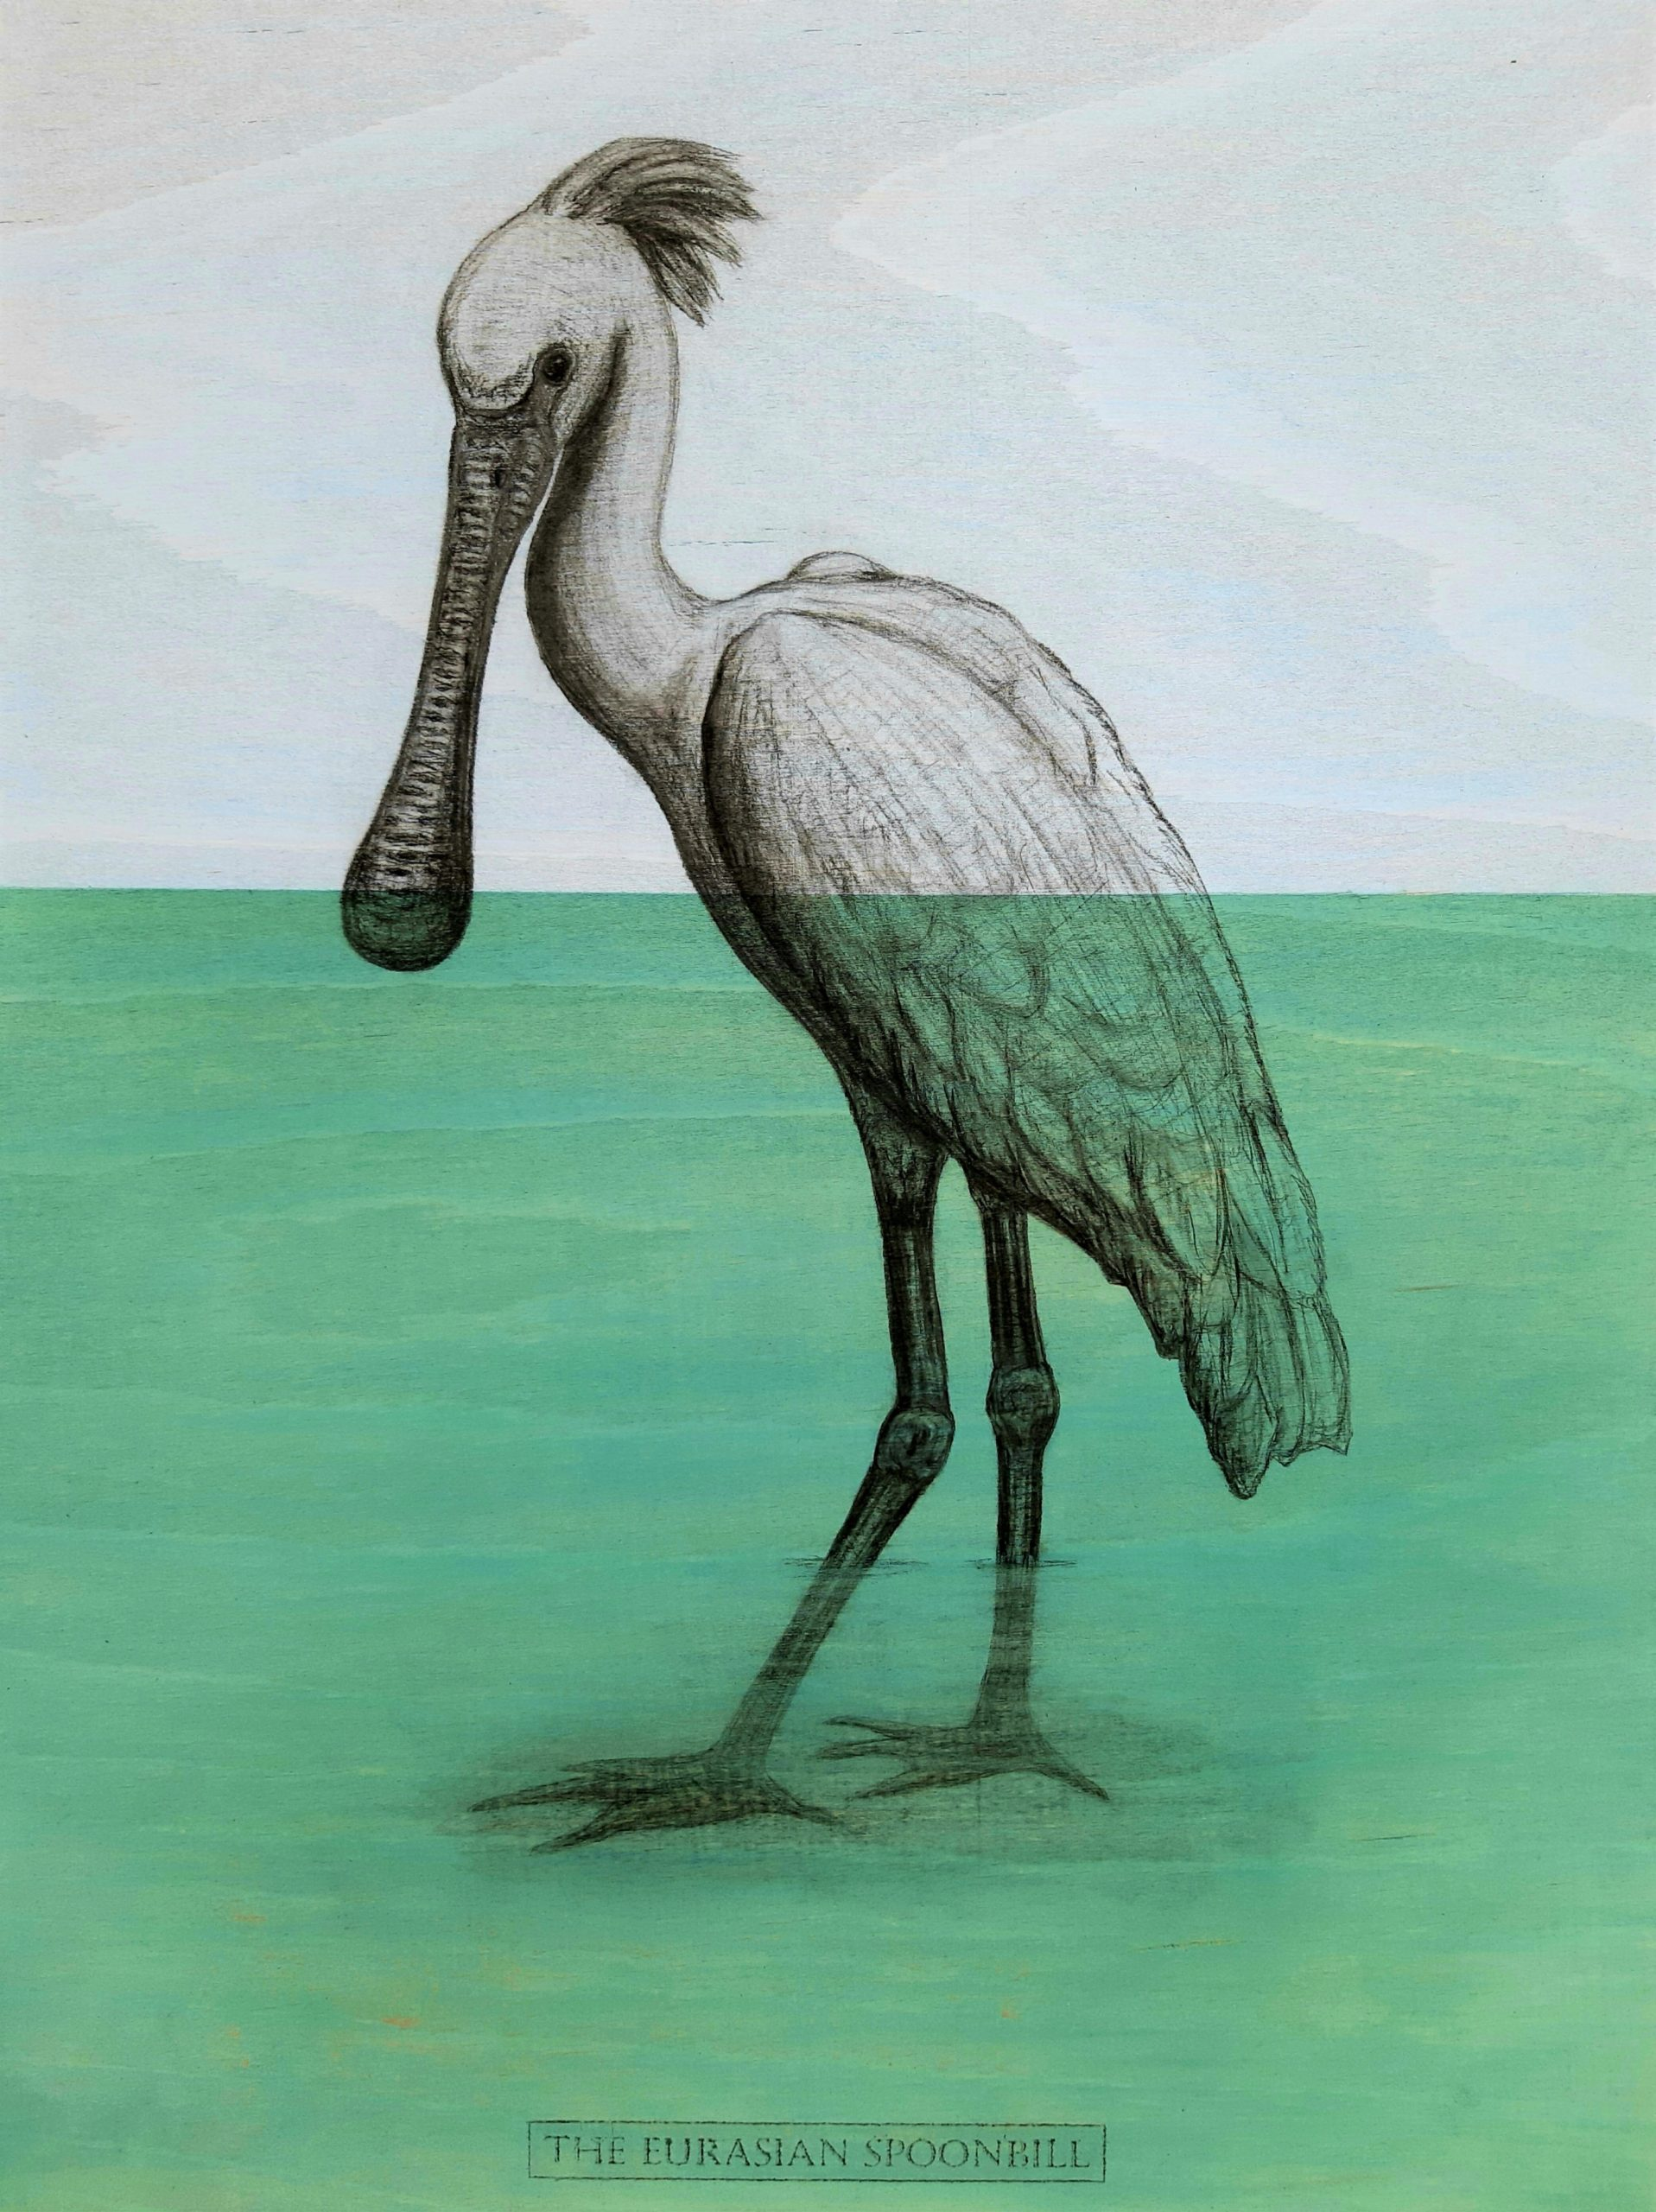 The Eurasian Spoonbill, 2020. Charcoal and acrylic on plywood. 46 x 35 cm. £600.